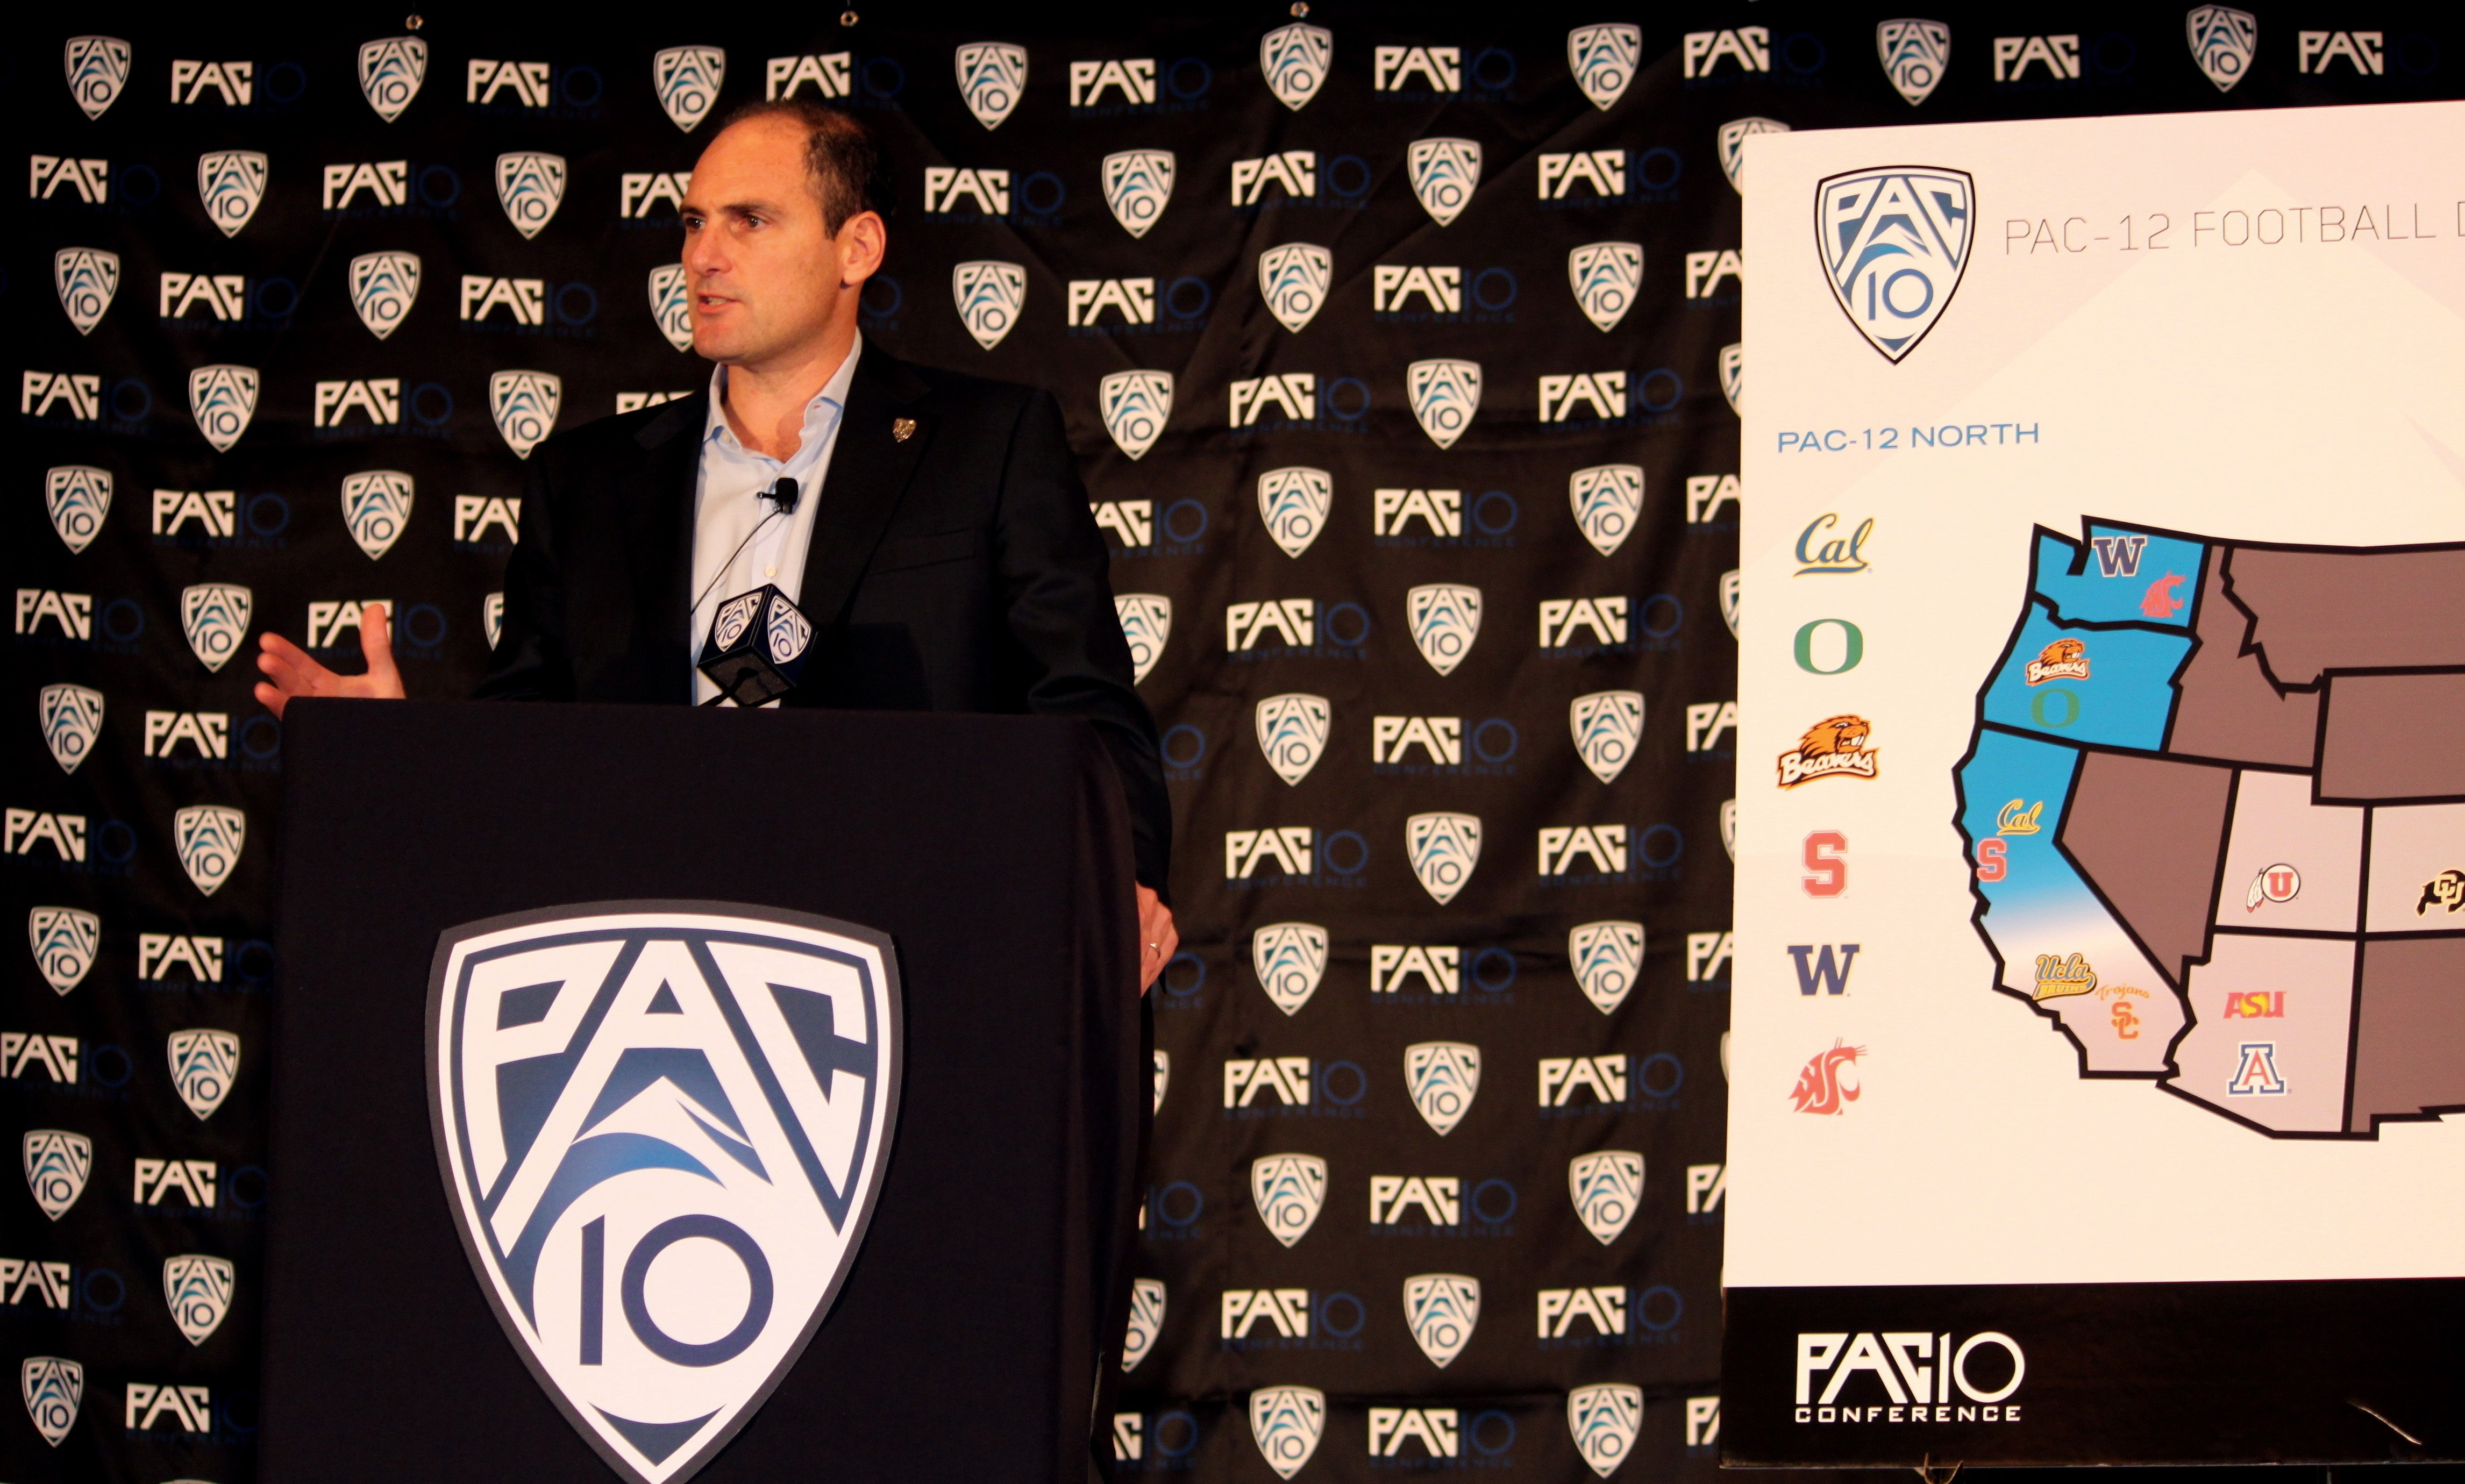 Pac-10 Press Conference